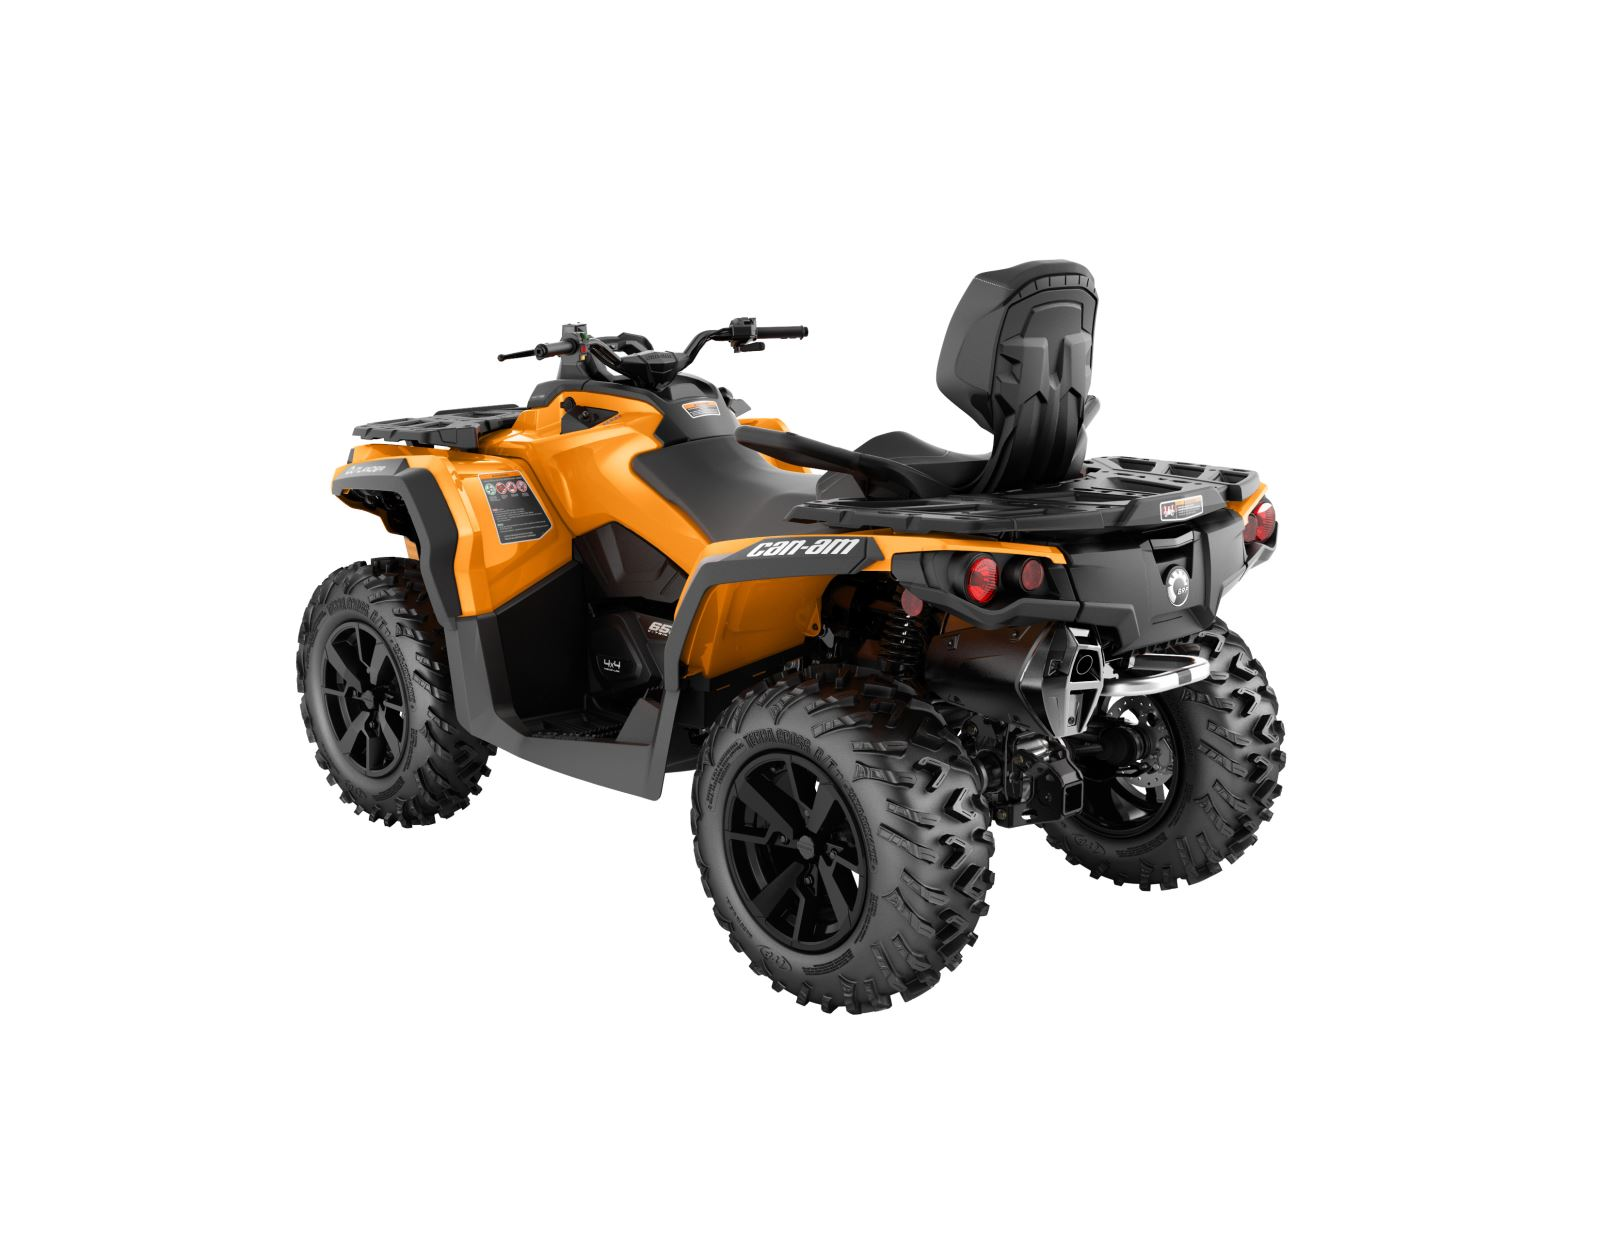 Details On 2019 Can-Am Outlander Family – Part 3 One of the